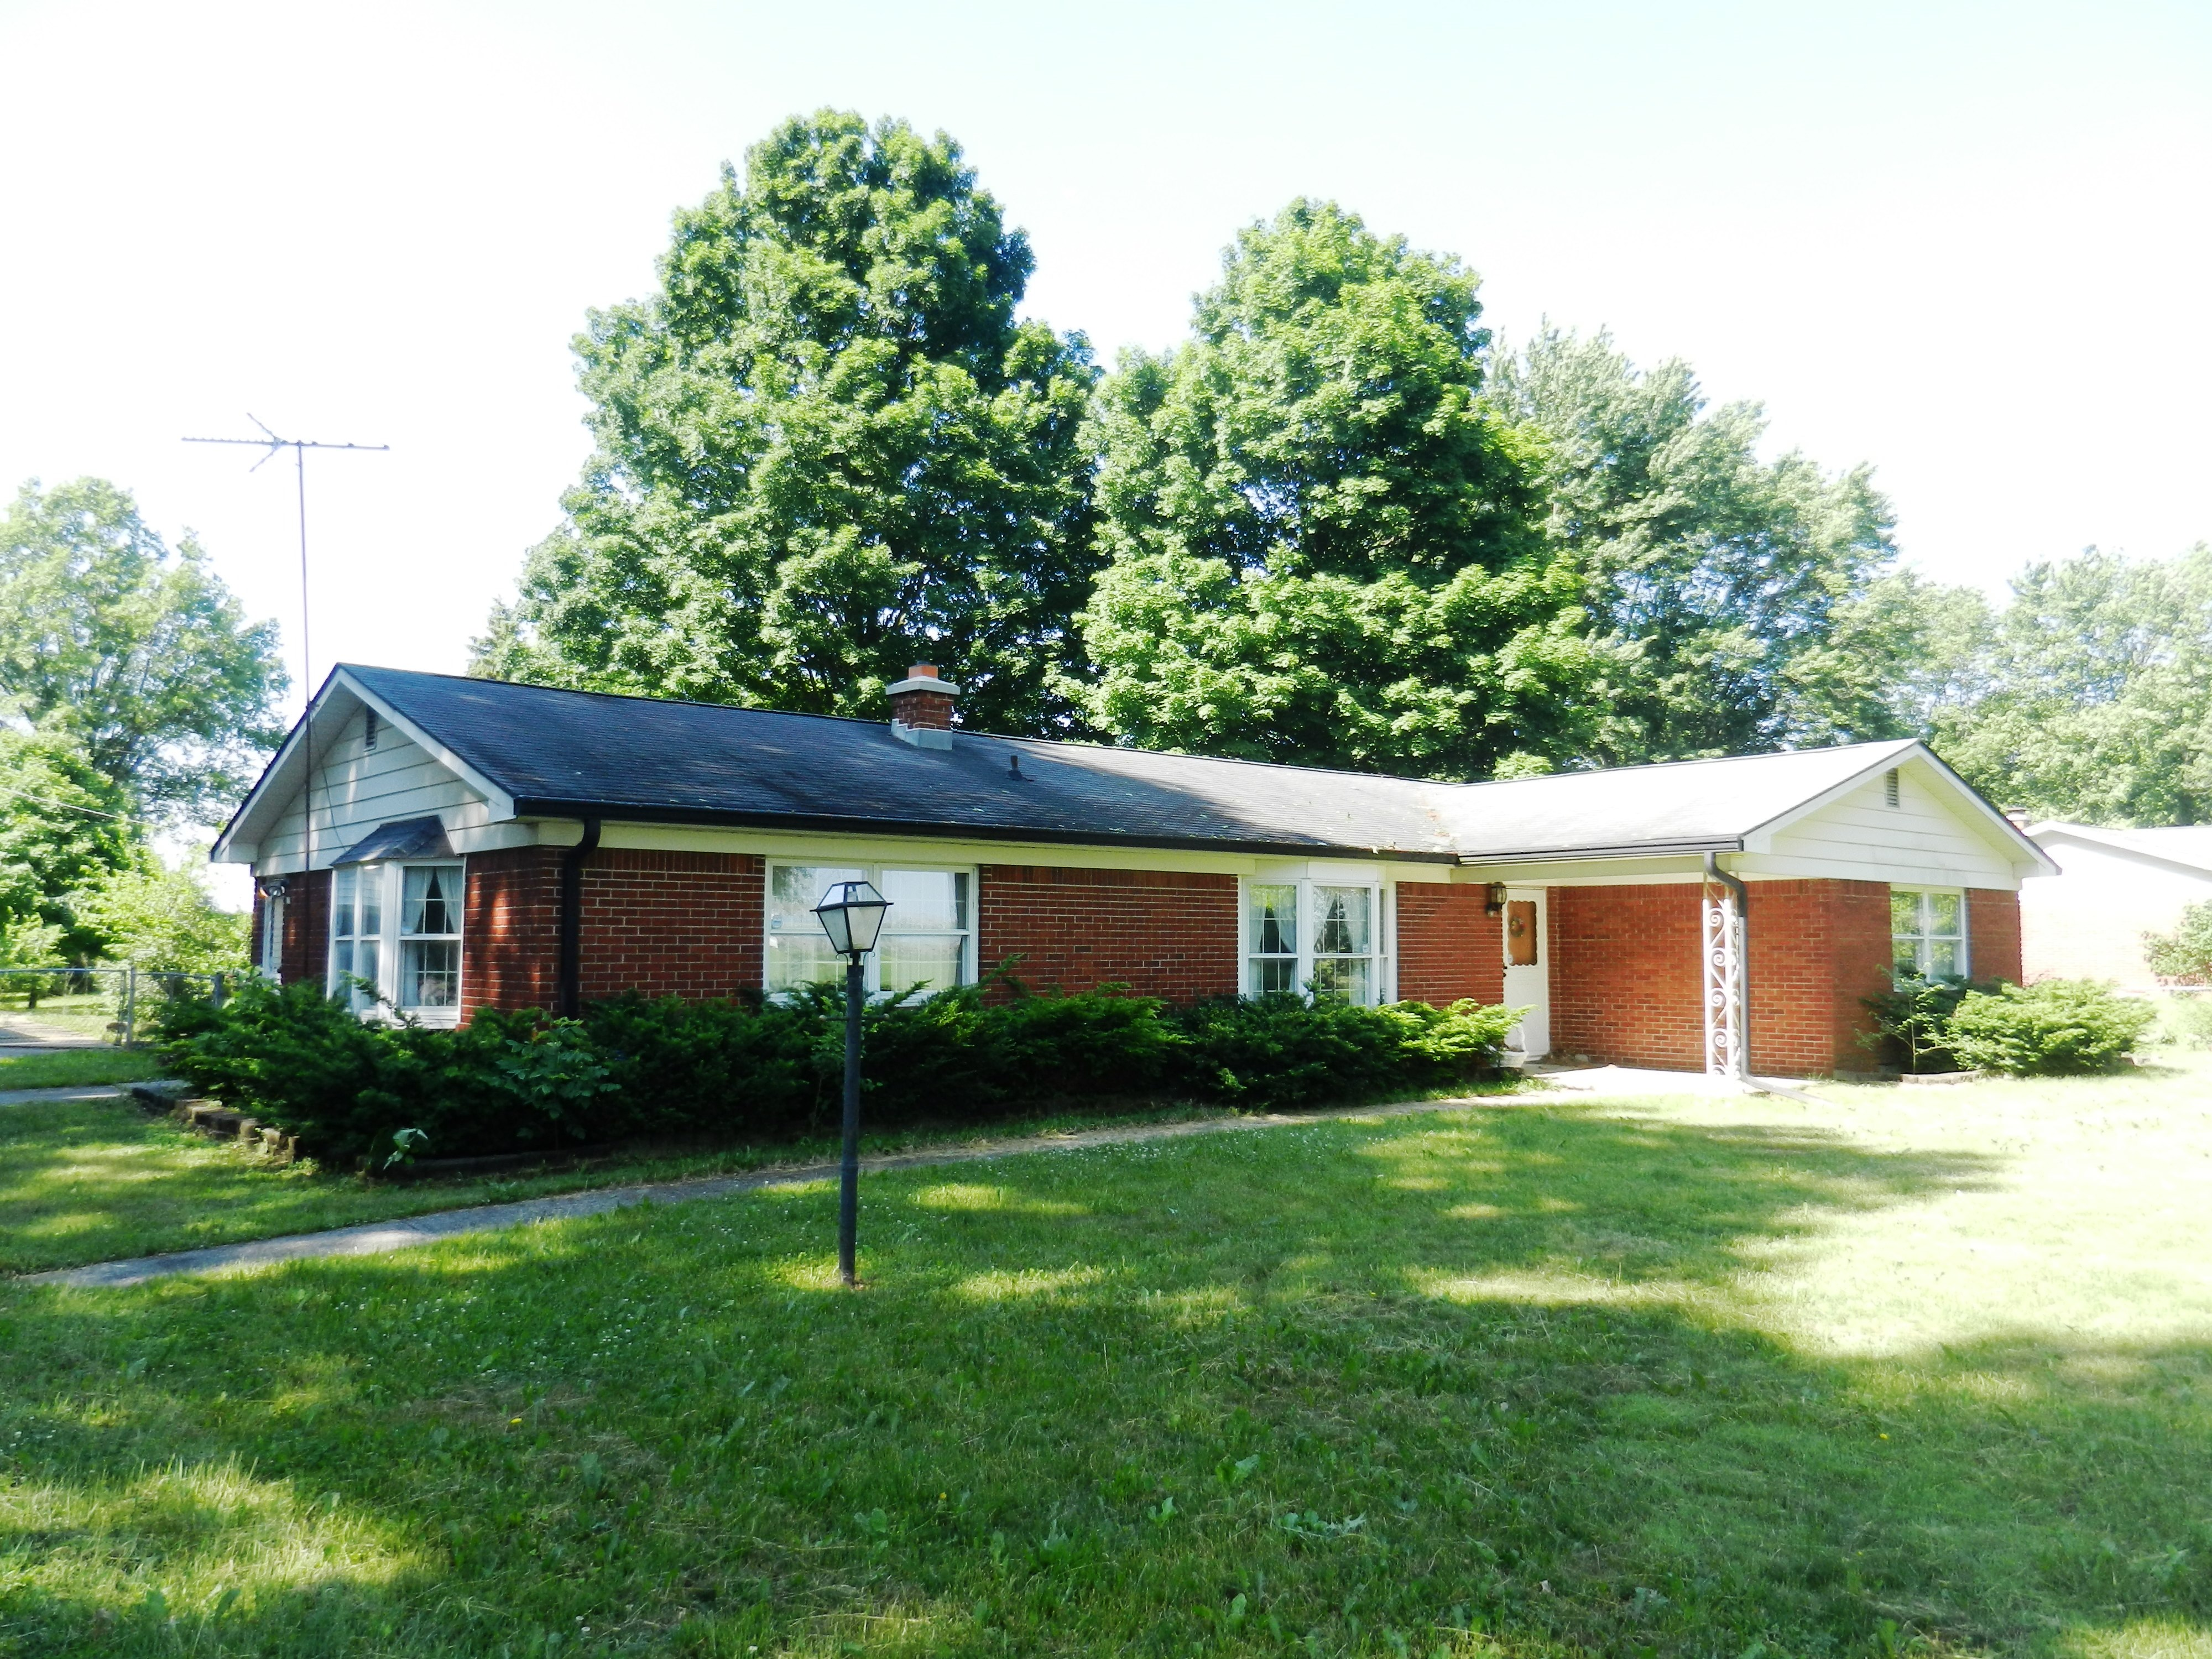 3 BEDROOM BRICK RANCH ON 1.48 ACRES!